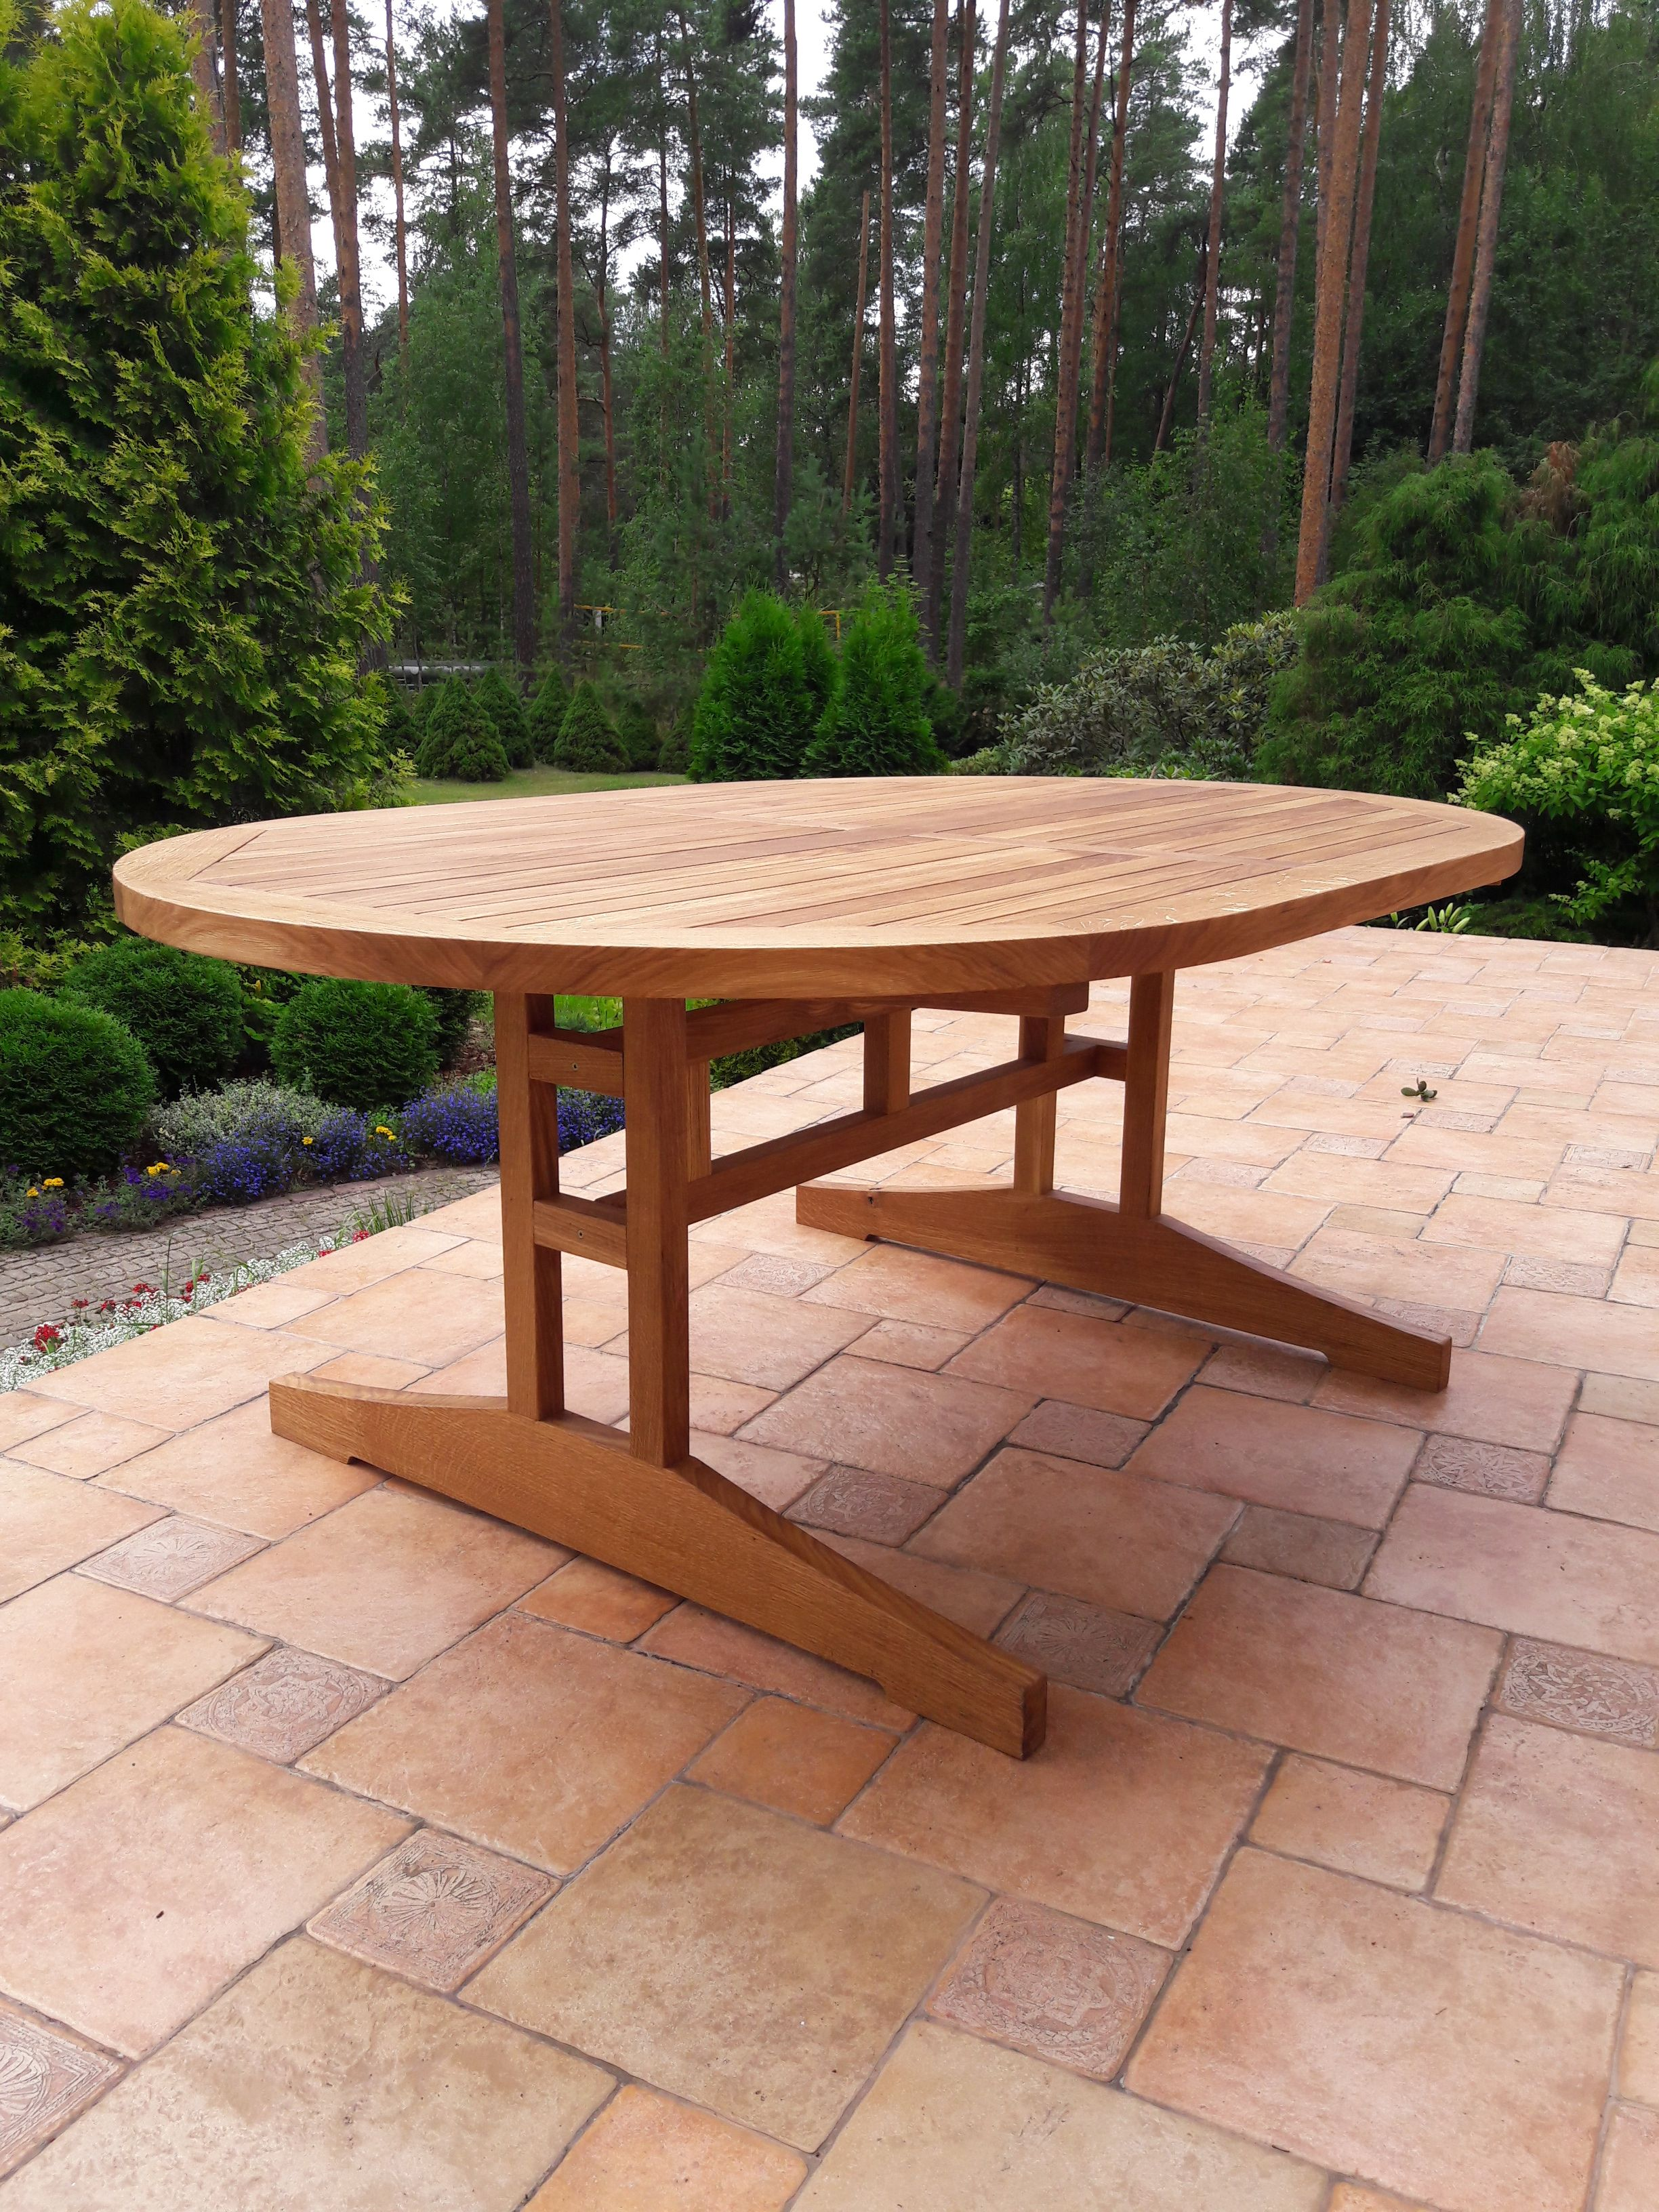 Oak patio table tung tree oil finish traditional joinery lasts forever